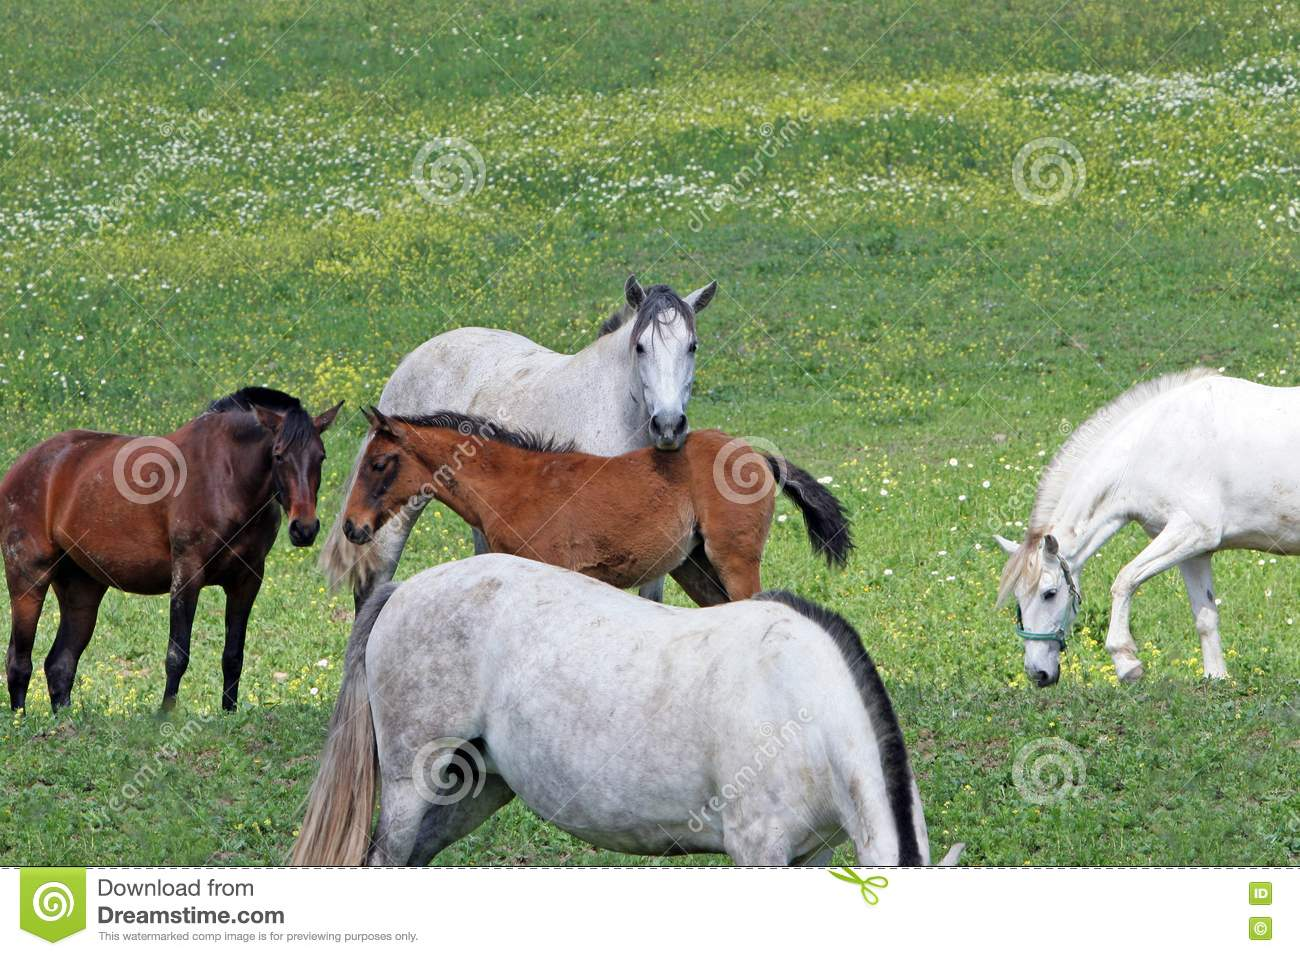 White and Brown Spanish Andalucian horses in a field